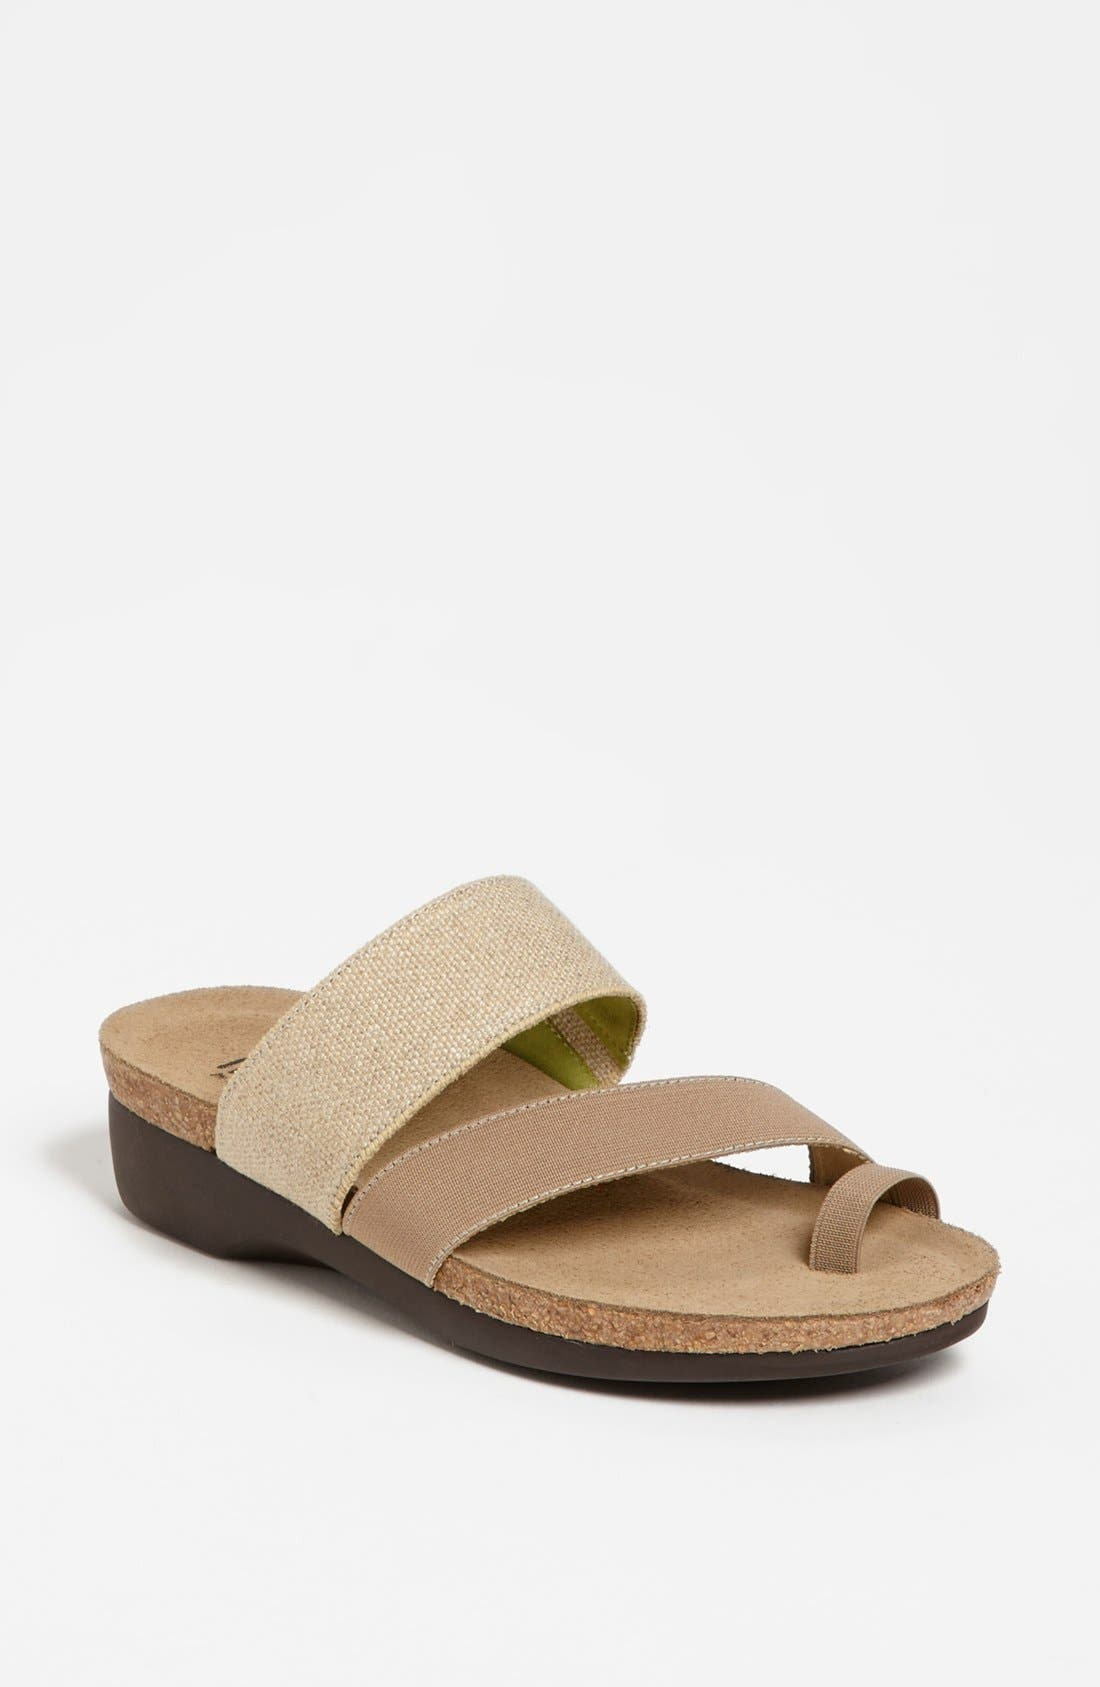 Built-in stretch perfects the fit of a comfort-savvy sandal with clean, contemporary curves. Style Name: Munro \\\'Aries\\\' Sandal. Style Number: 902883. Available in stores.